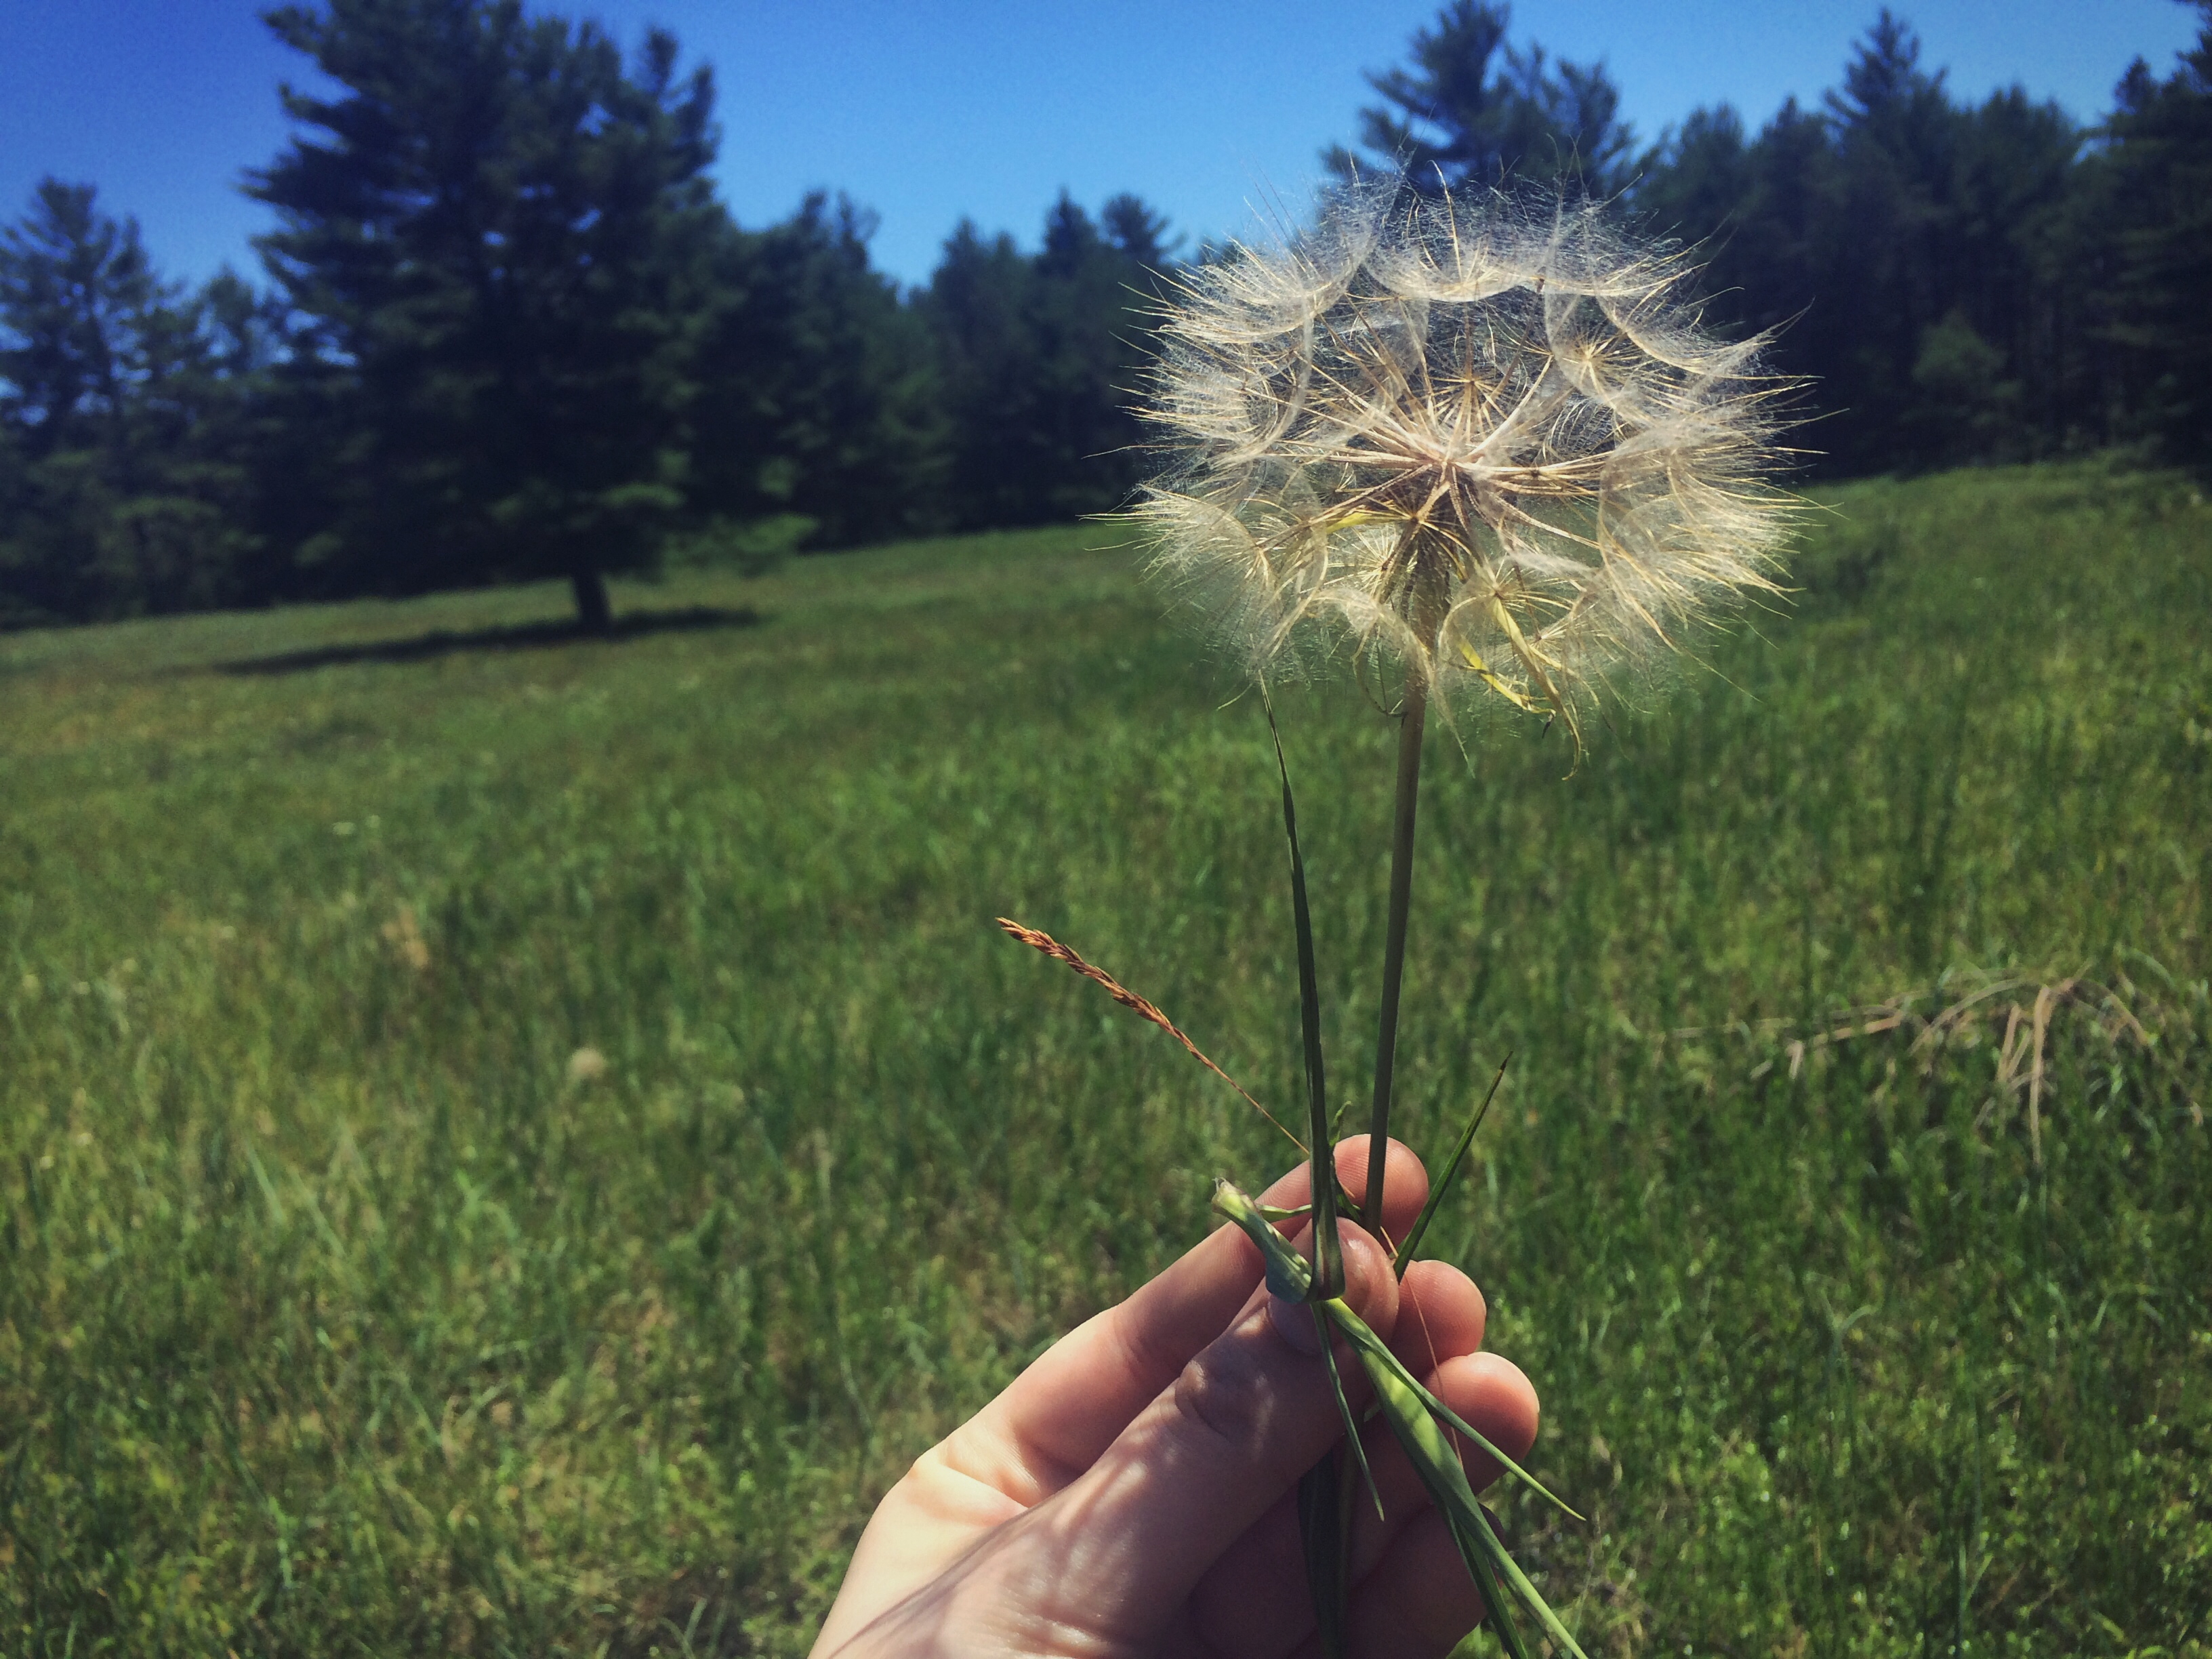 Dandelion in field near Round Pond in Myles Standish State Forest